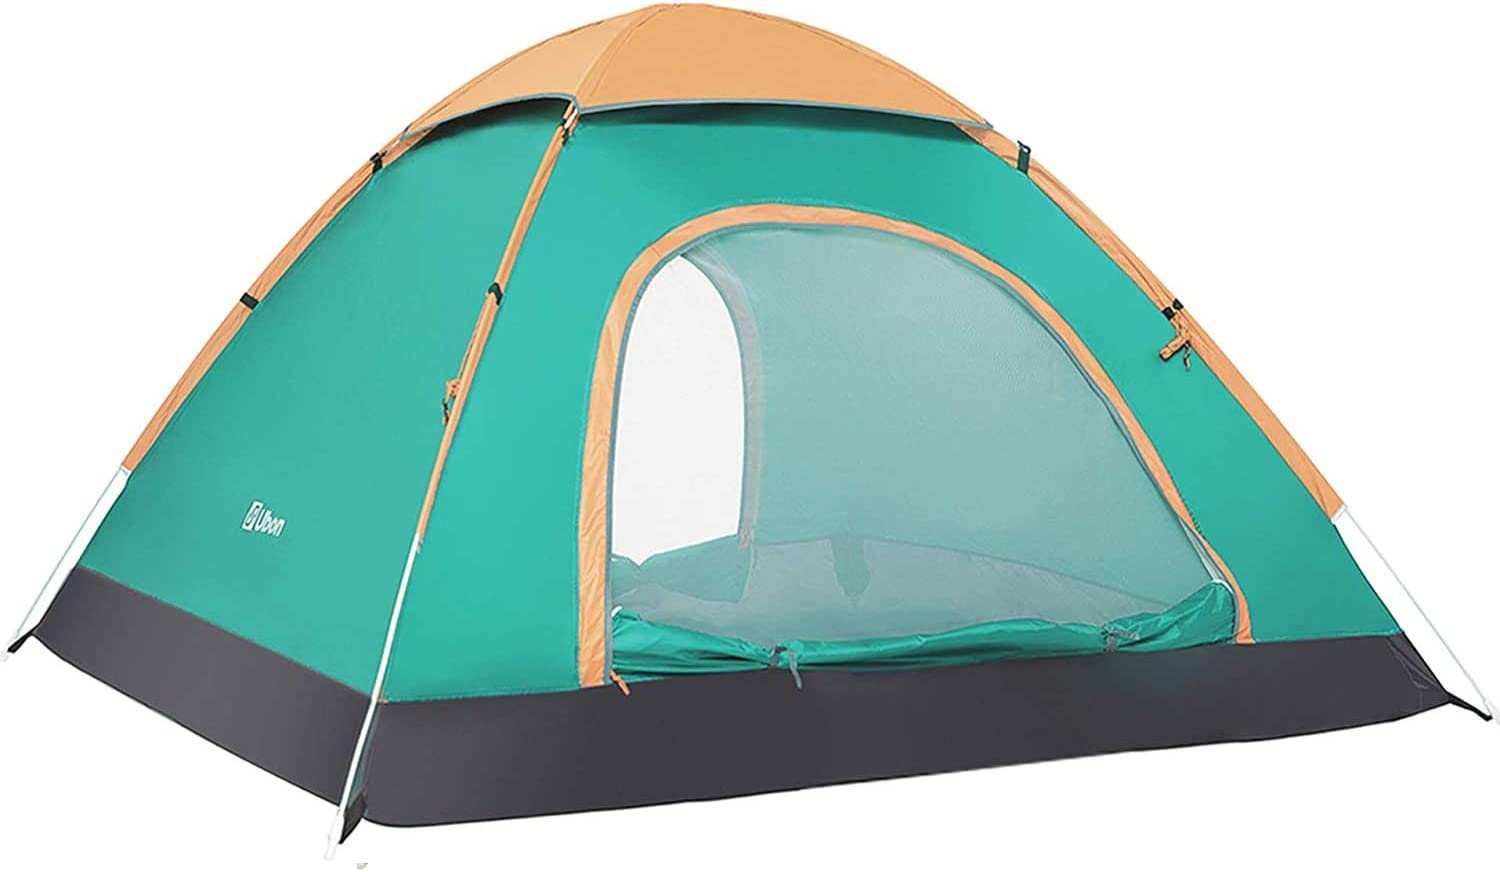 Ubon 2 3 Person Lightweight Instant Tent Indoor Durable Pop 2021 autumn and winter Quality inspection new T Up